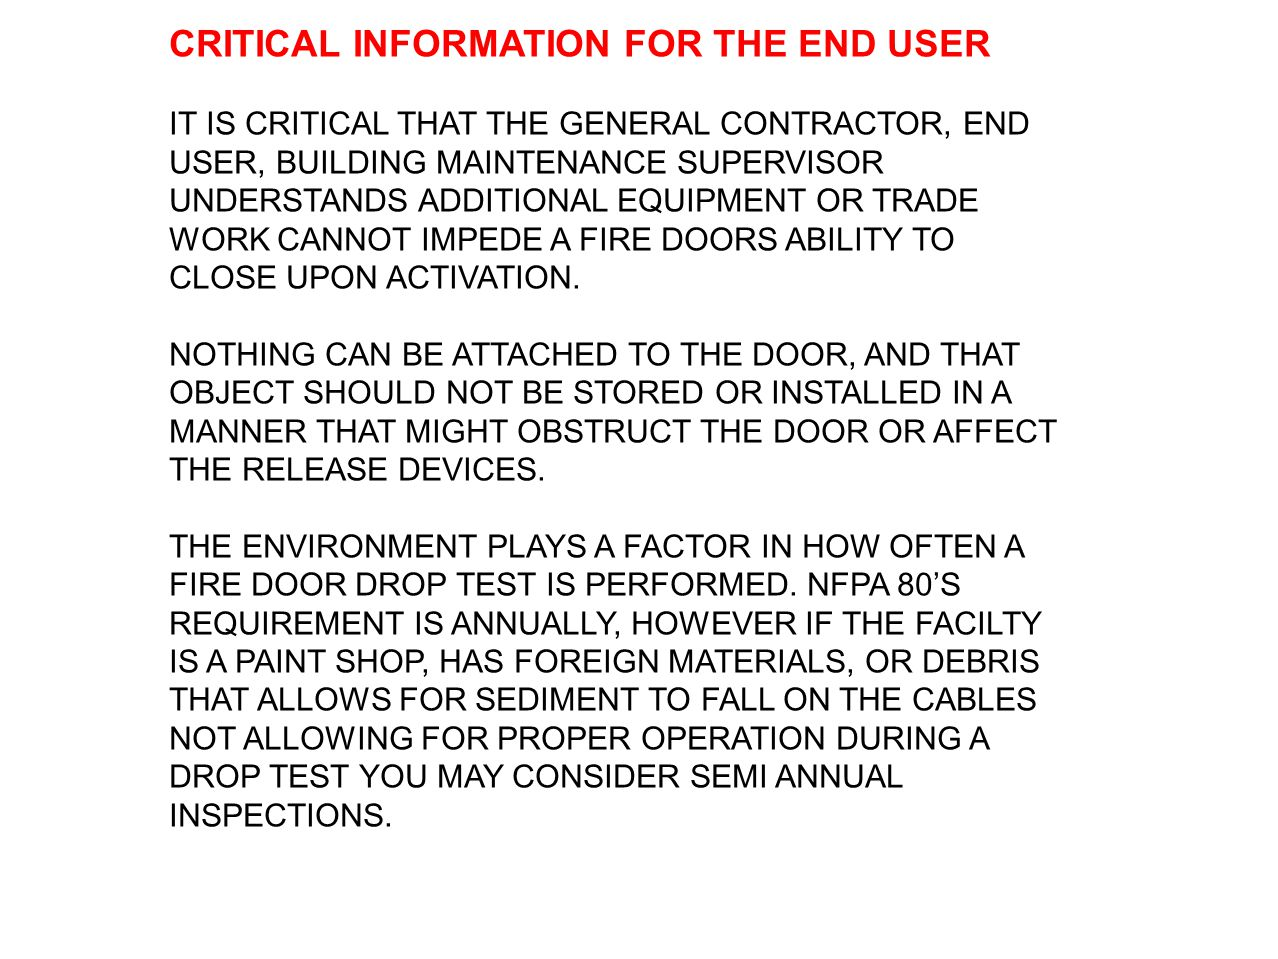 CRITICAL INFORMATION FOR THE END USER IT IS CRITICAL THAT THE GENERAL CONTRACTOR, END USER, BUILDING MAINTENANCE SUPERVISOR UNDERSTANDS ADDITIONAL EQU